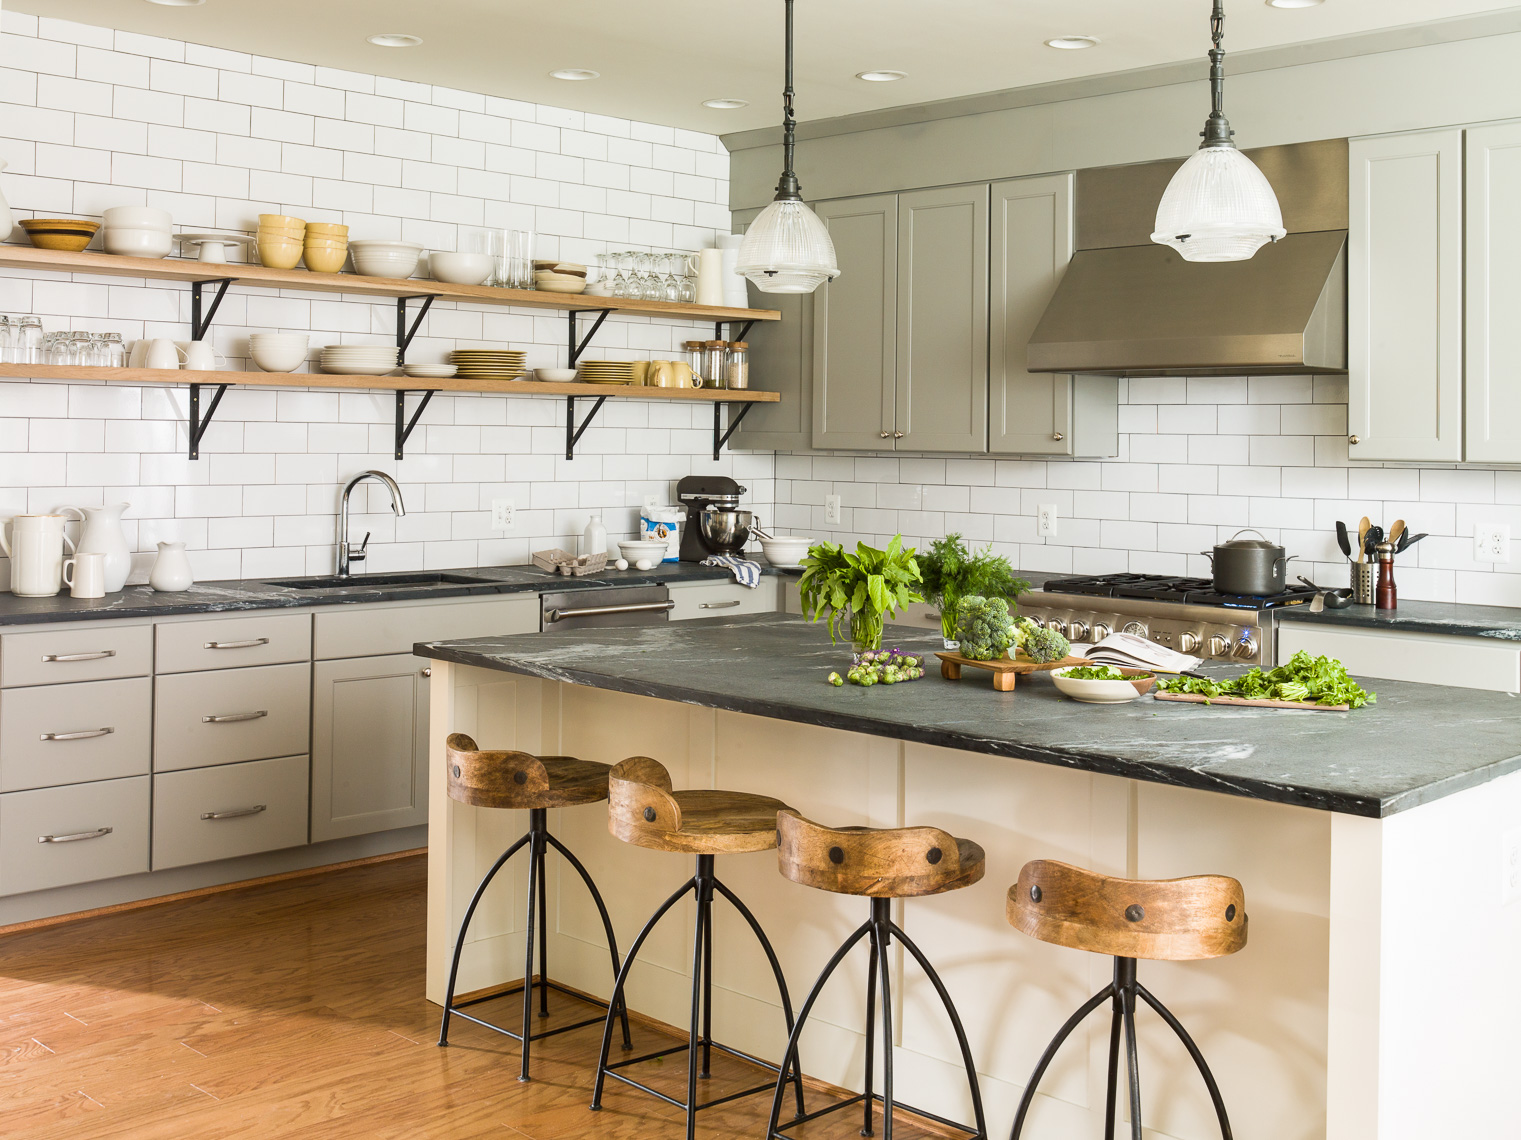 let's talk about soapstone